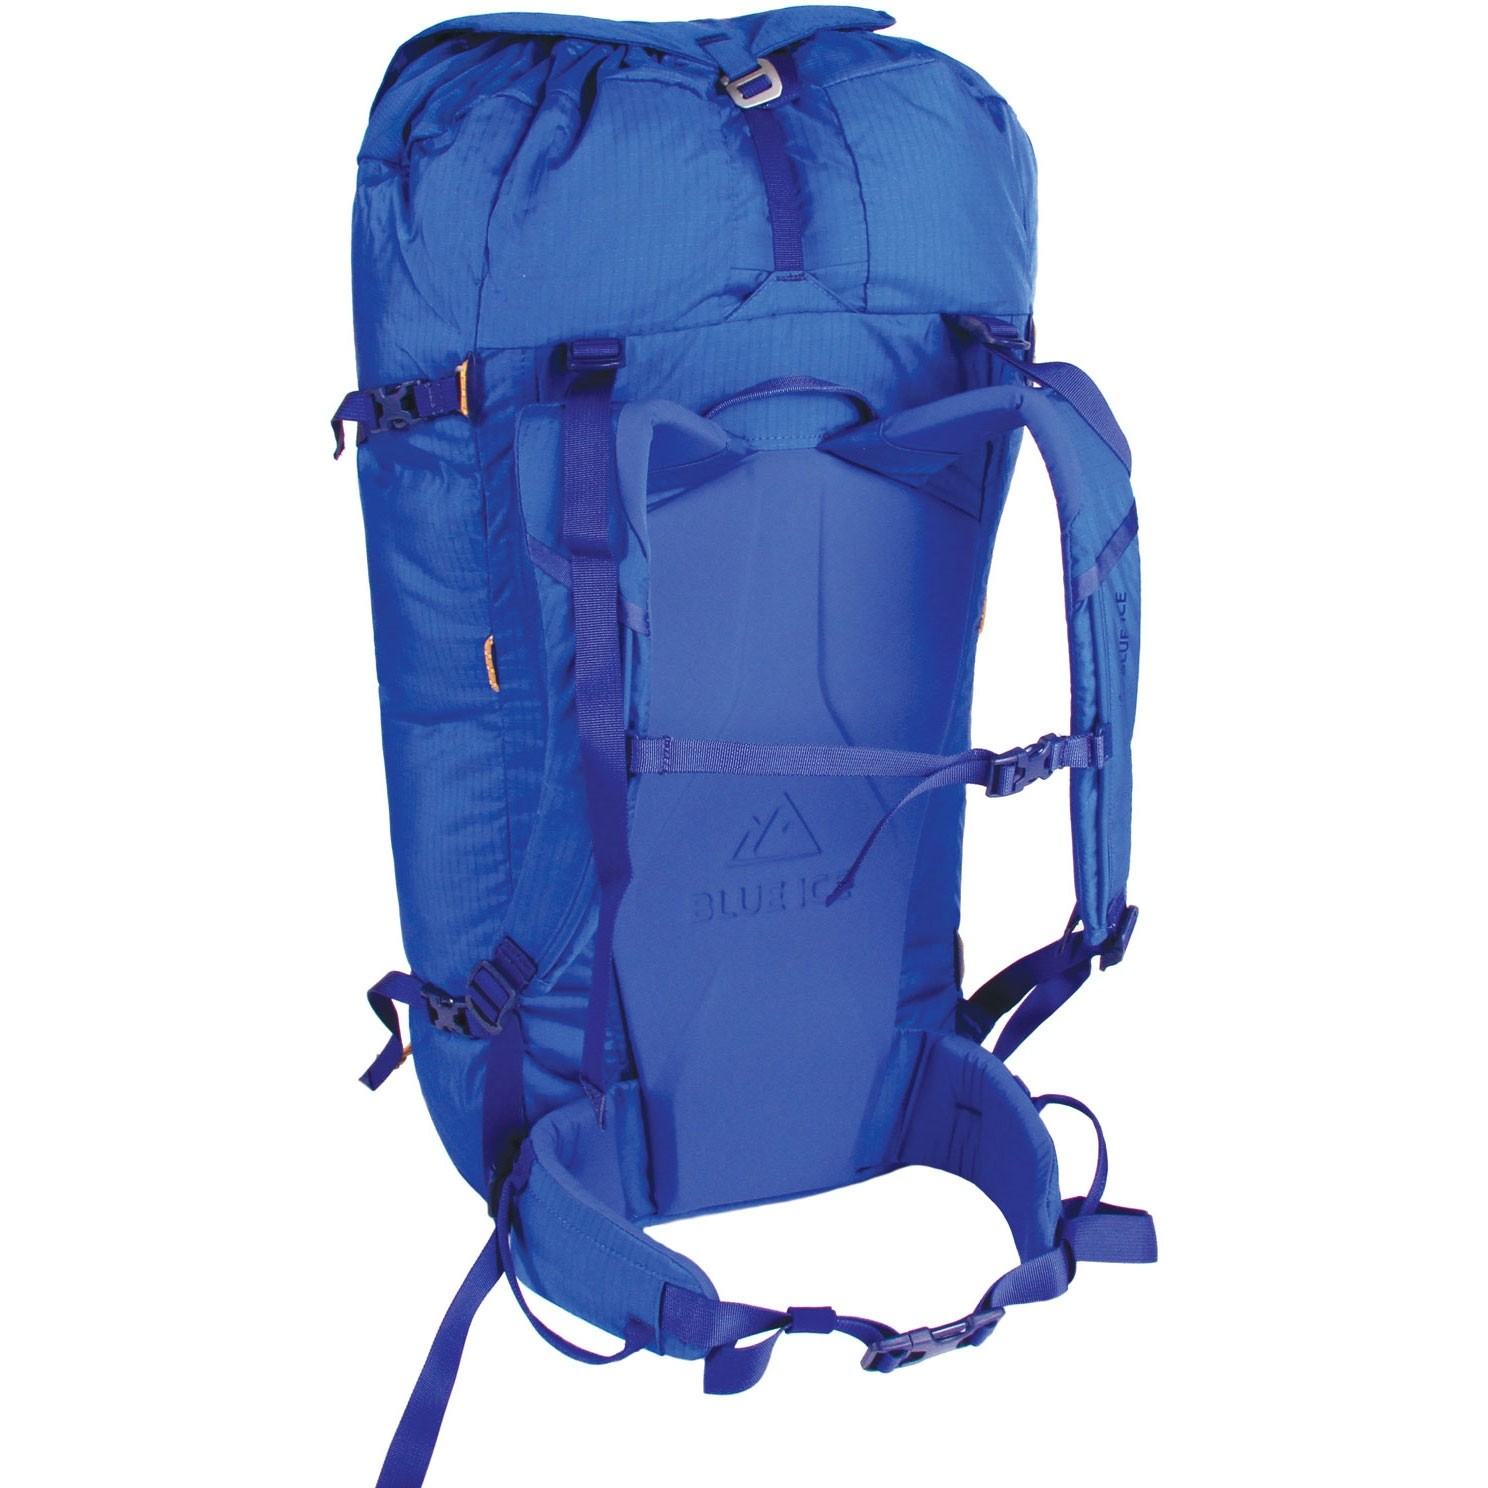 Blue Ice Warthog 45L Rucksack - Turkish Blue - back